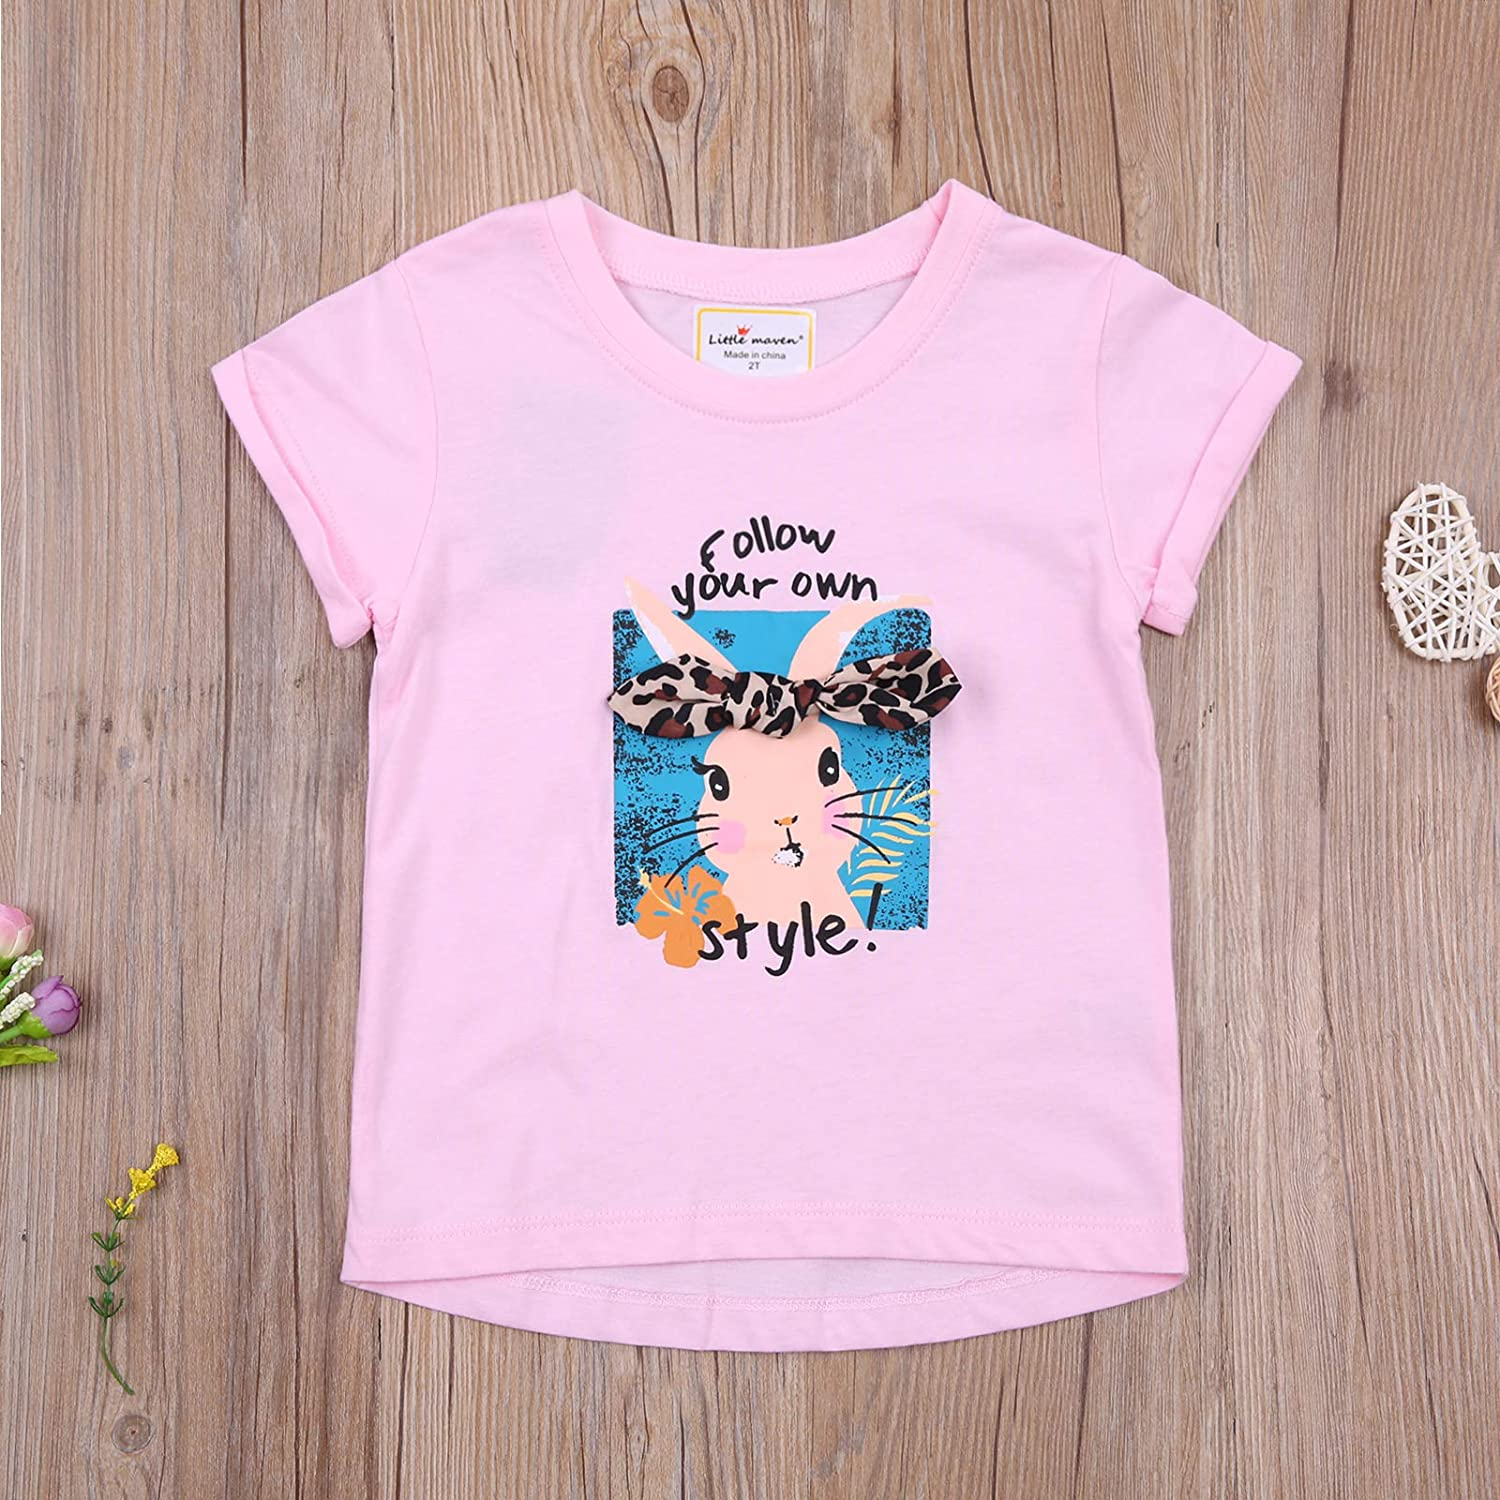 Easter Toddler Girl Outfits Rabbit Short Sleeves Toddler Girl Easter Shirt Clothes 2-8T